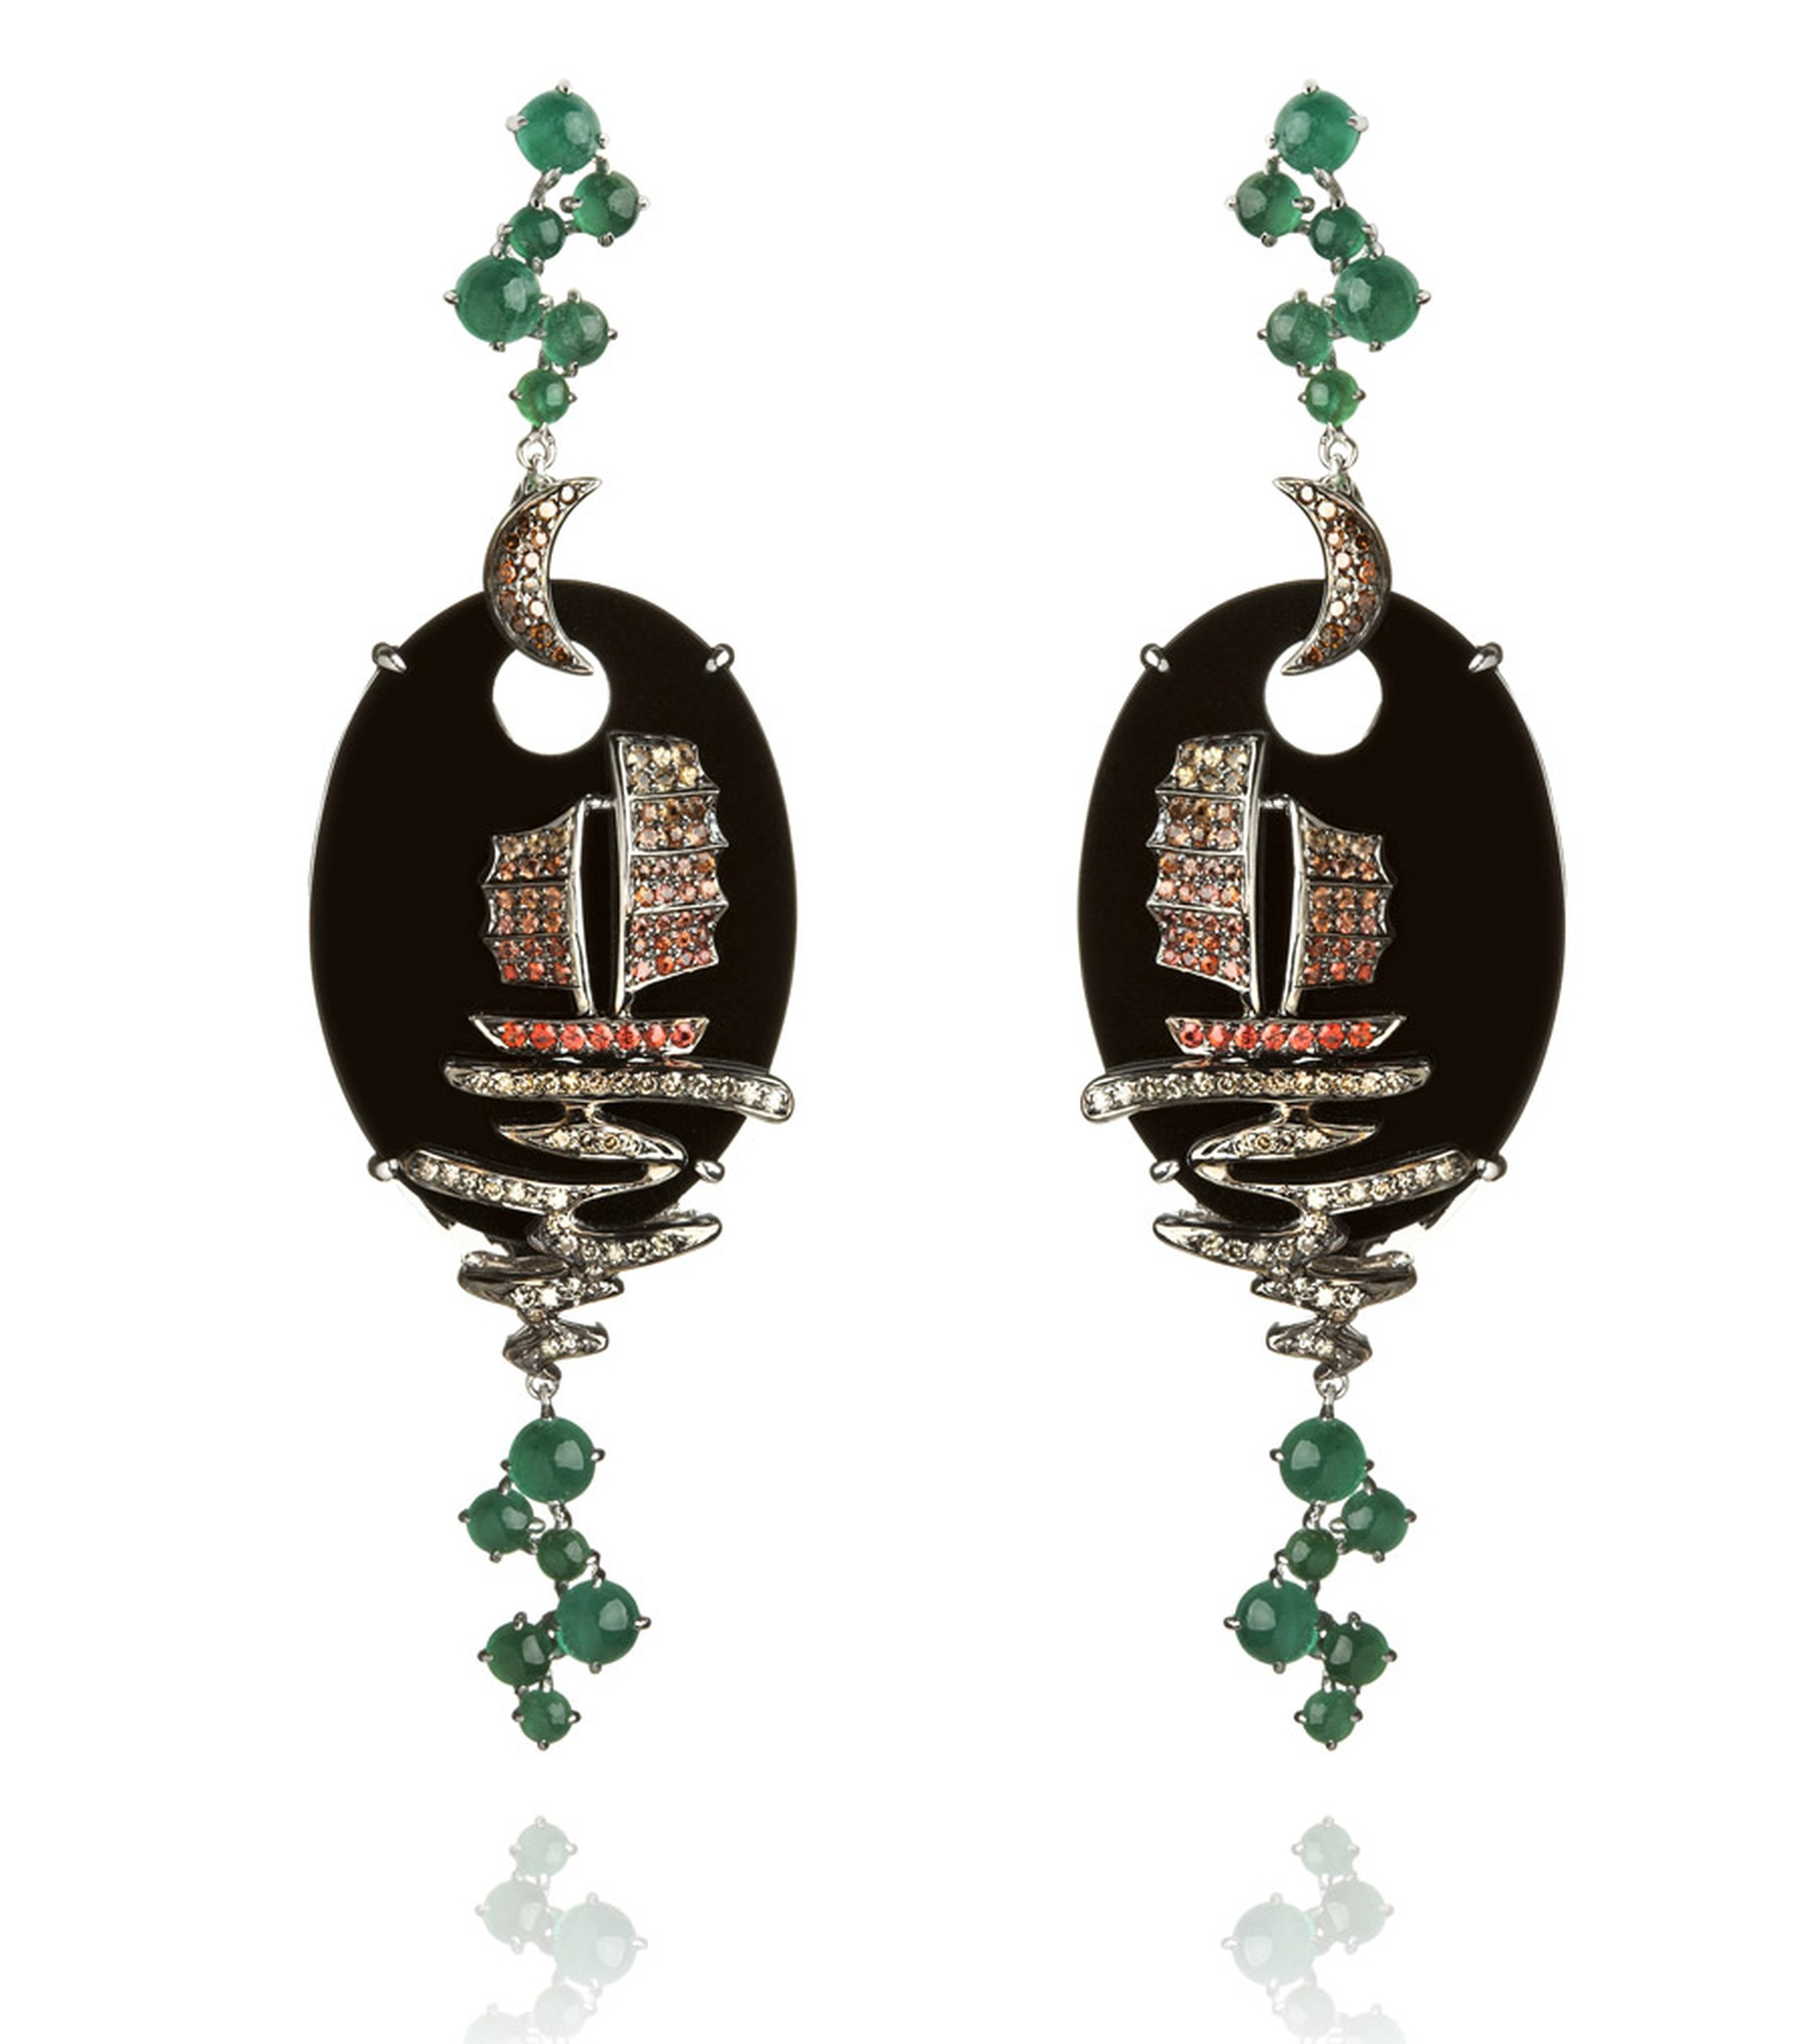 Wendy-Yue-Fantasie-18ct-white-gold,--diamond,-sapphire-and-emerald-Night-Ship-earrings-By-Wendy-Yue-for--Annnoushka.jpg